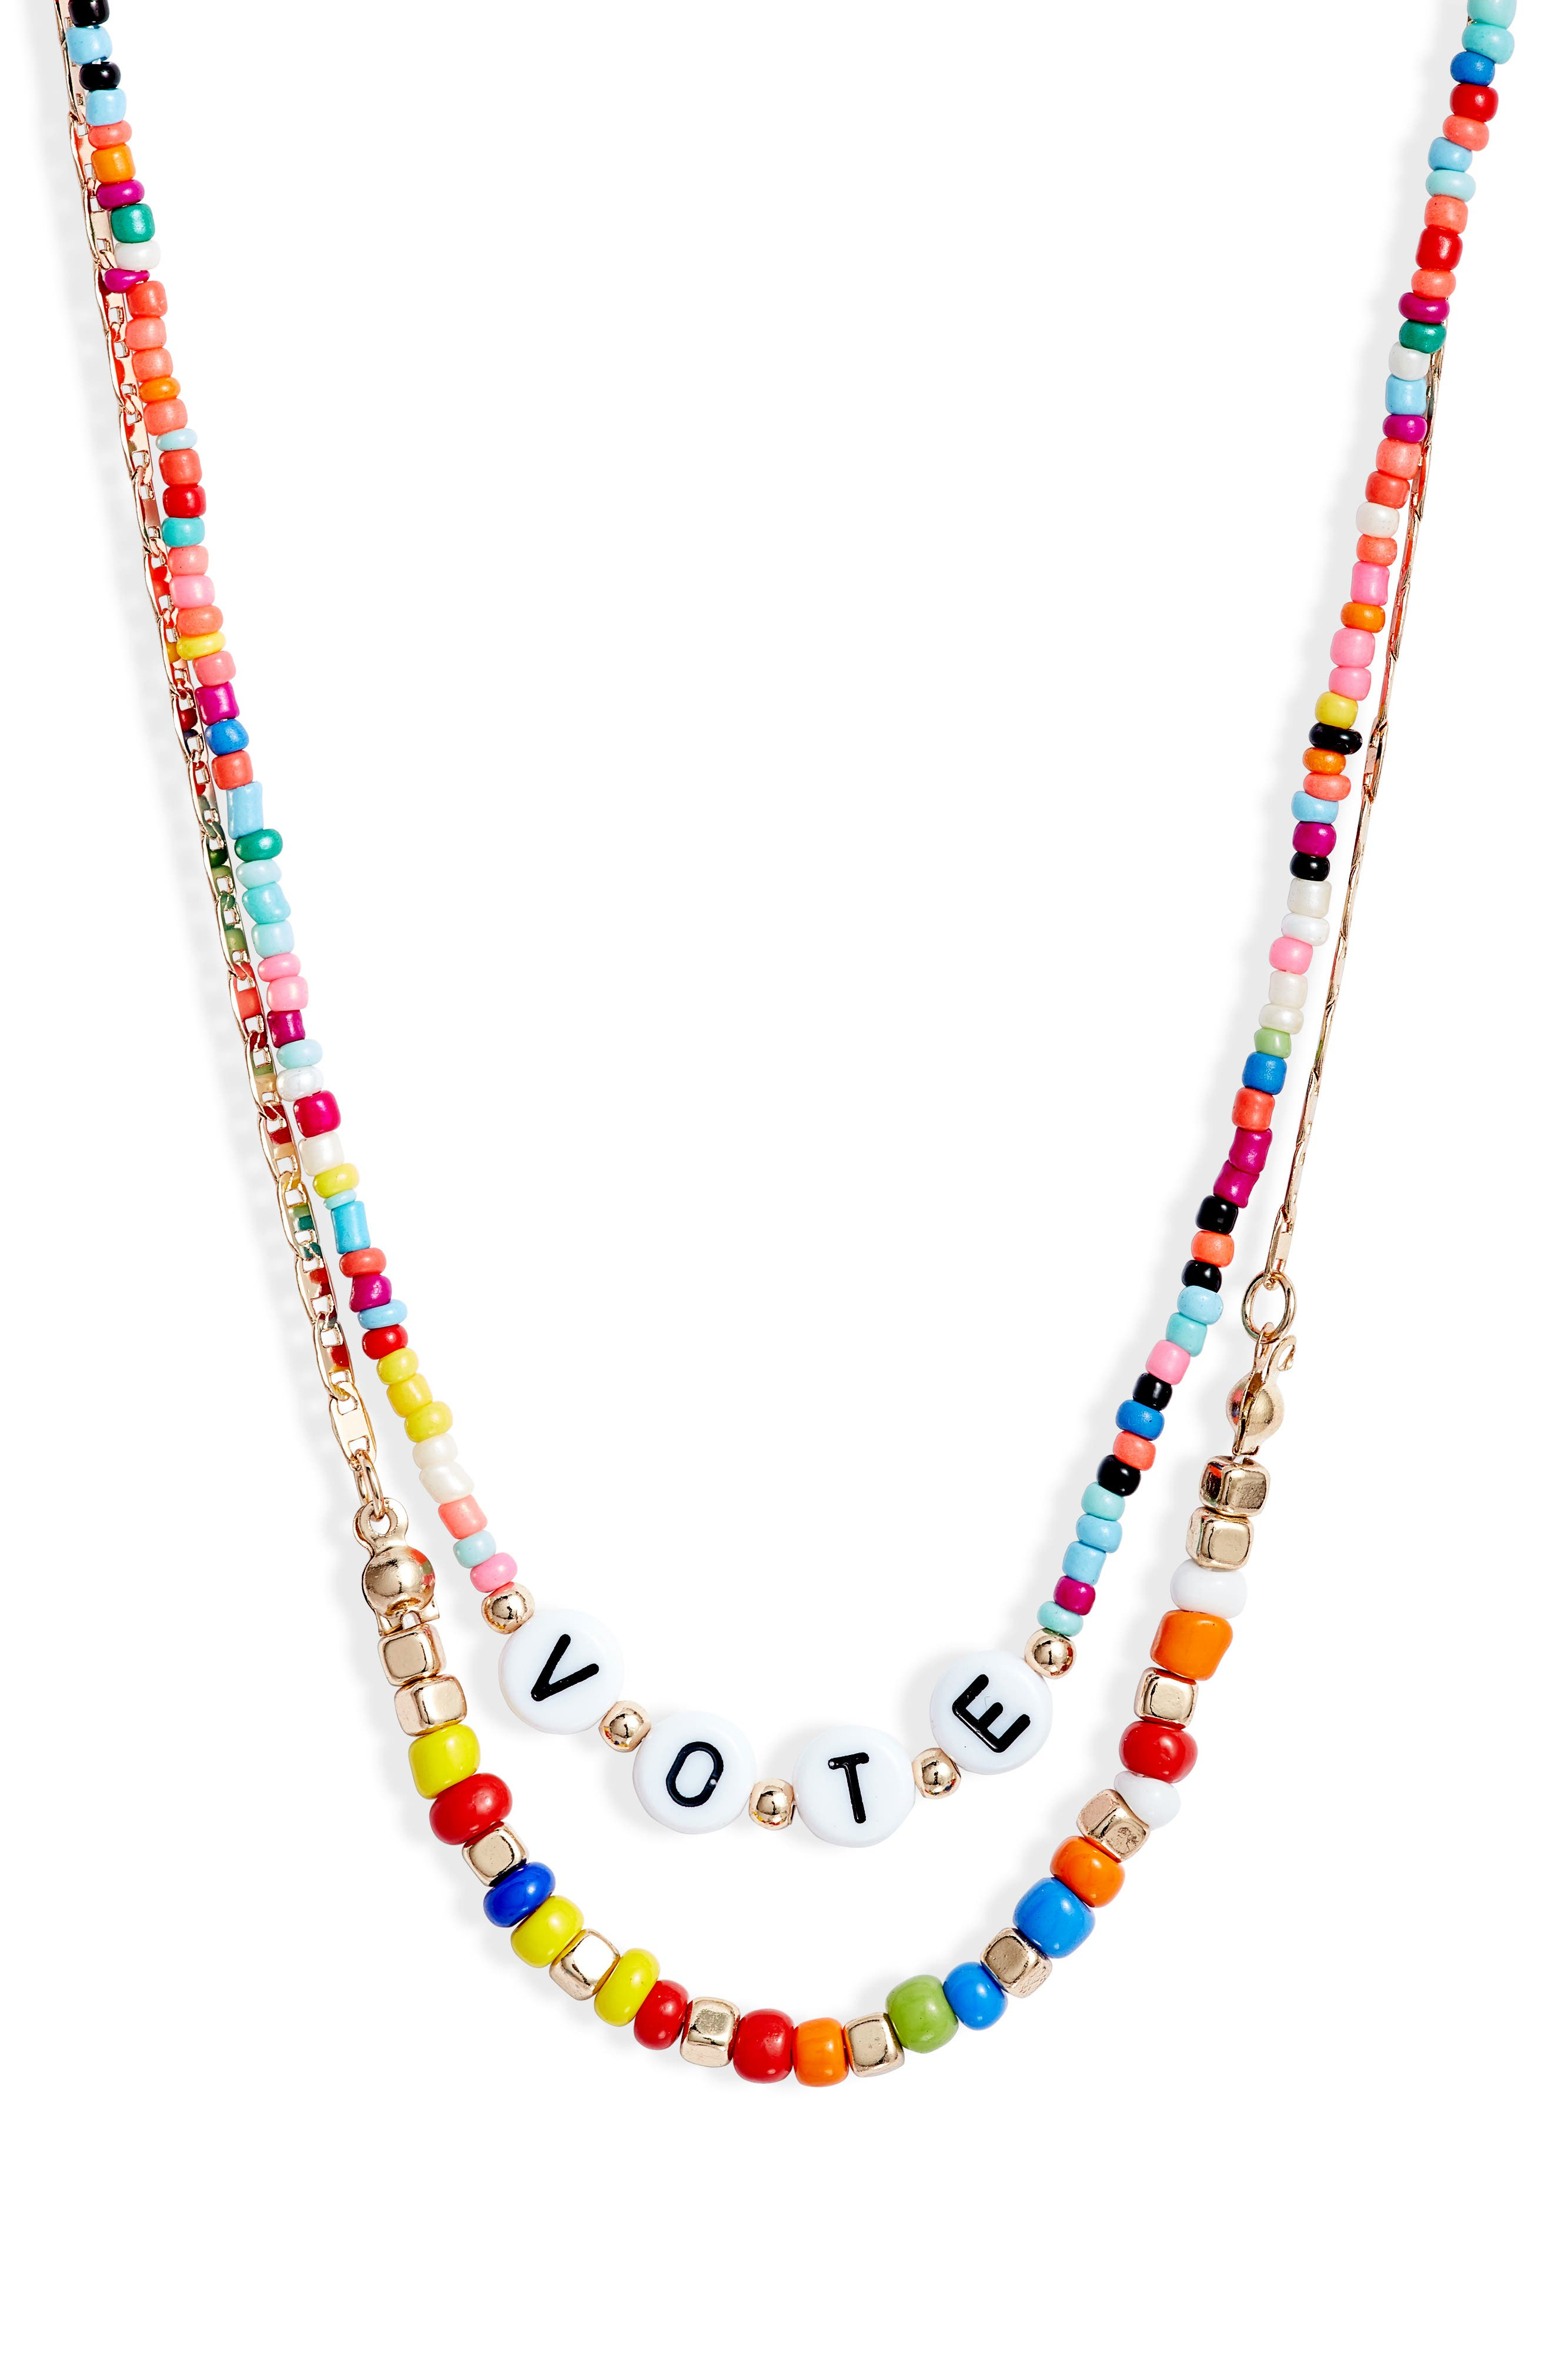 A colorful reminder to make your voice heard, this layered, mixed-media necklace is a splash of fun with a purpose. Style Name: Bp. Vote Layered Necklace. Style Number: 6097996. Available in stores.